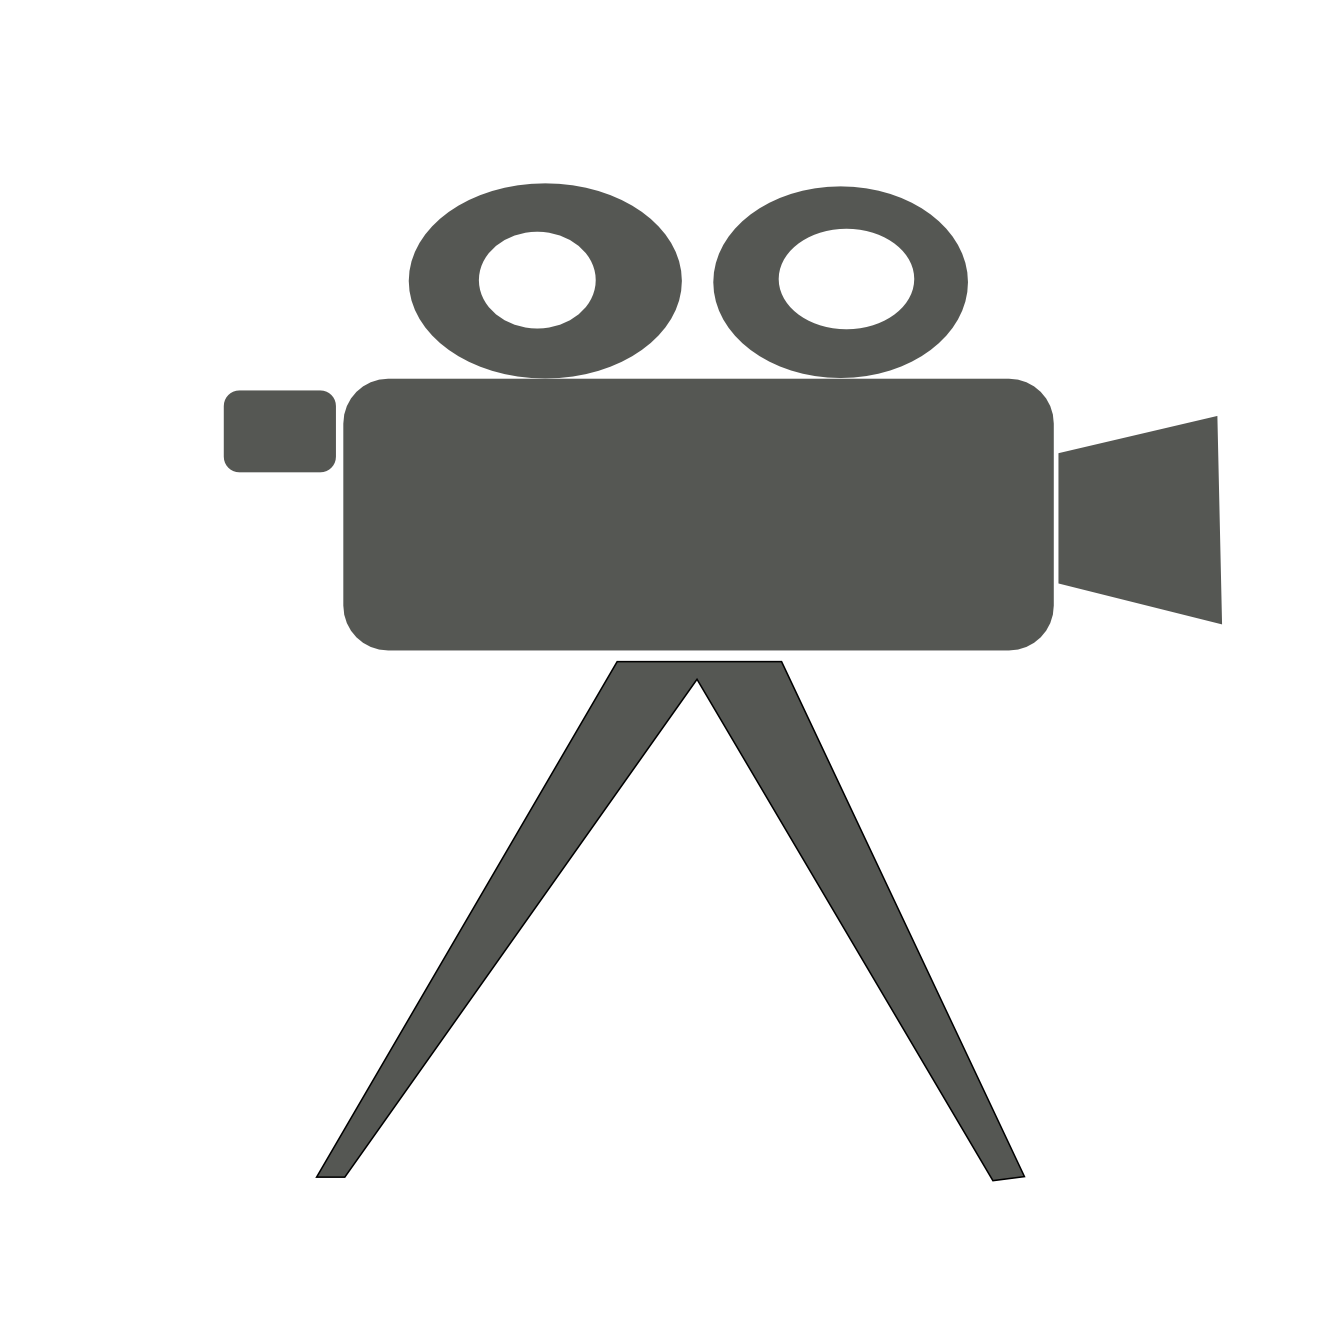 Animated video px png. Camera clipart cartoon